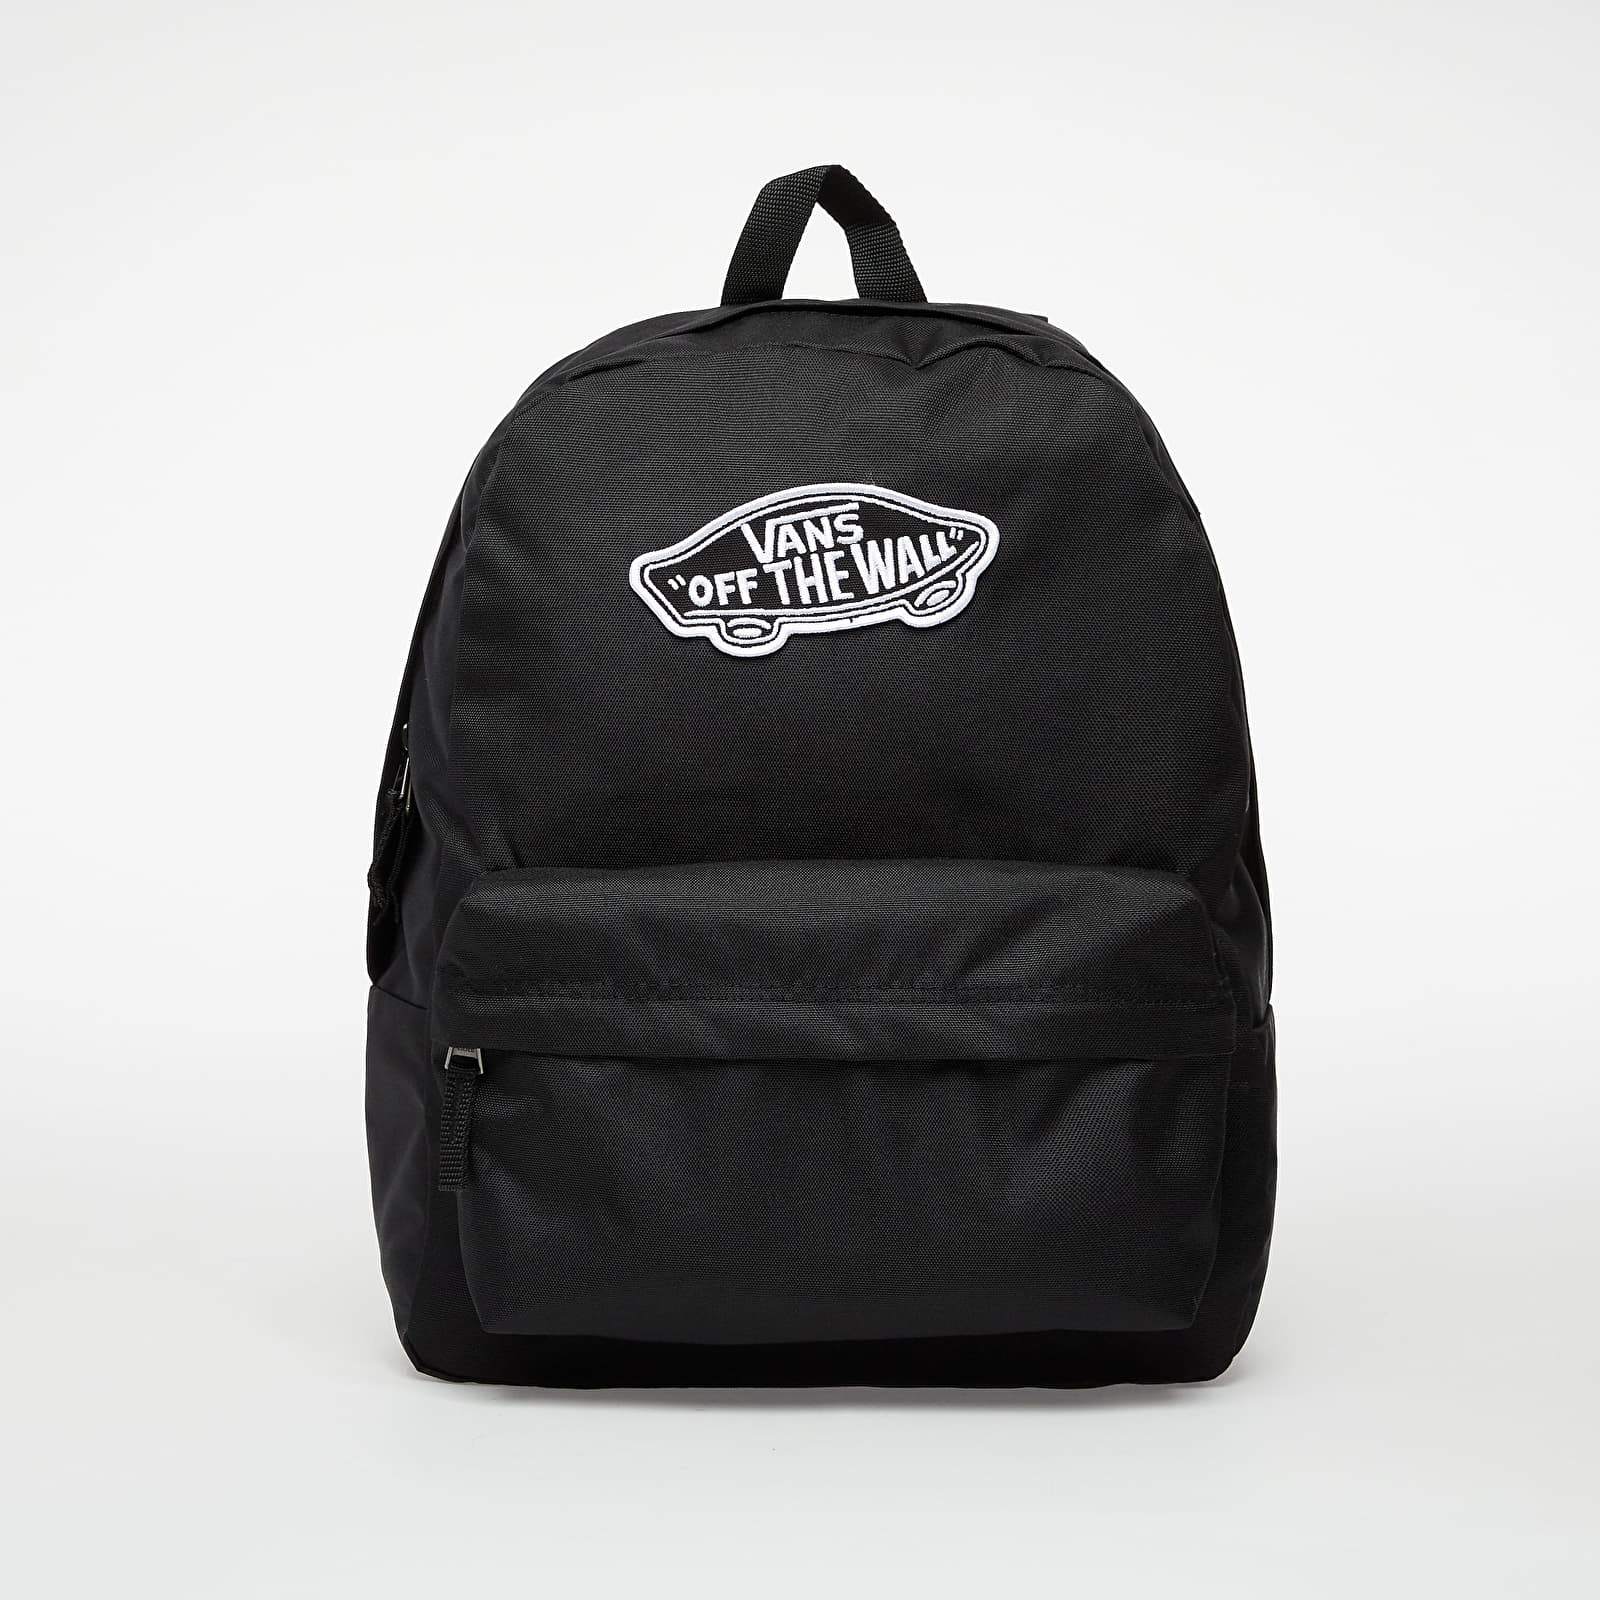 Hátizsákok Vans Realm Backpack Black